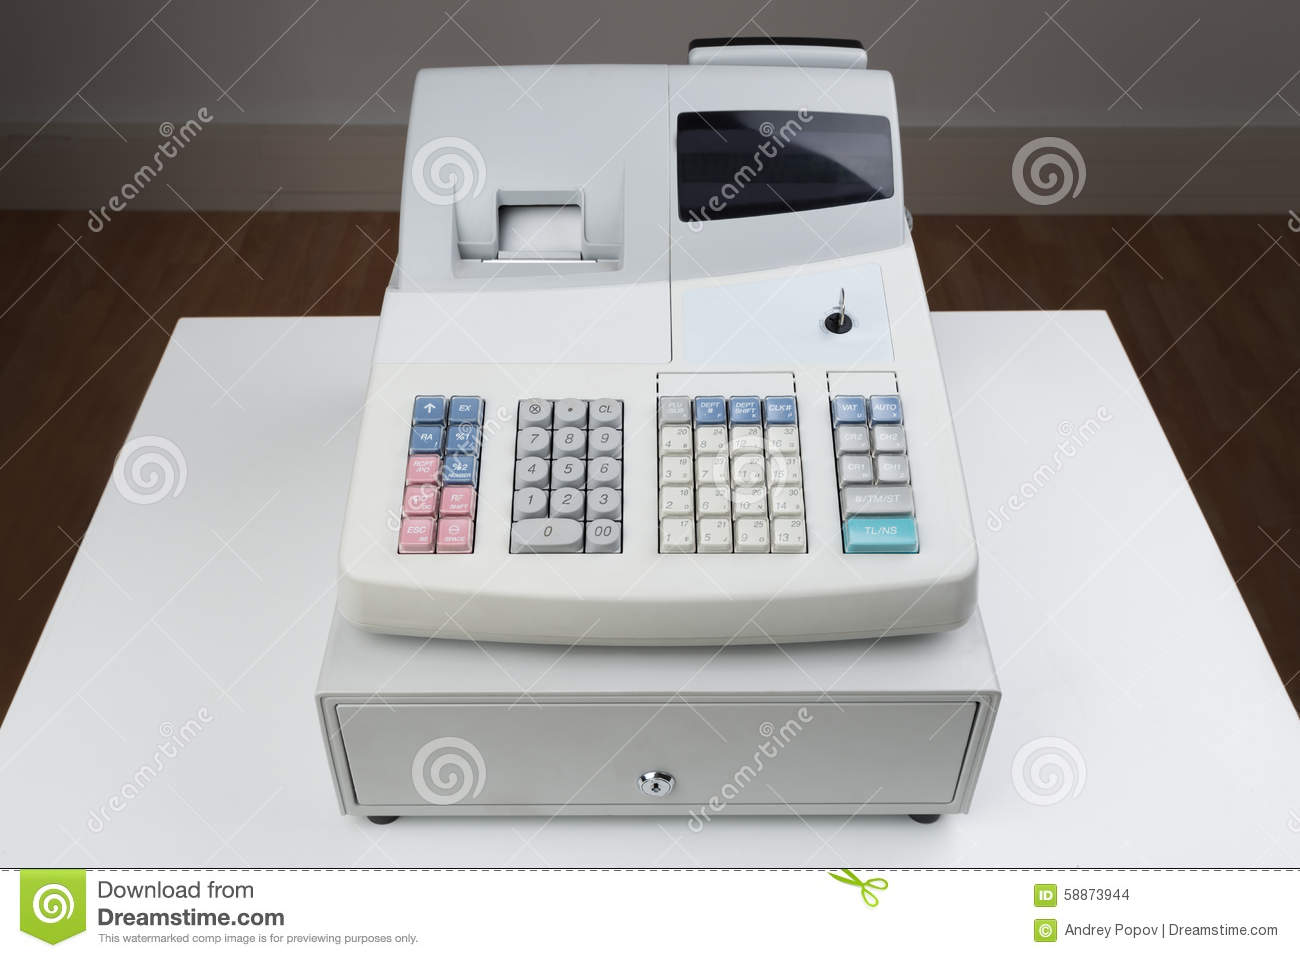 No Credit Check Financing Electronics Cash Register Moneybox Stock Photo Image 58873944